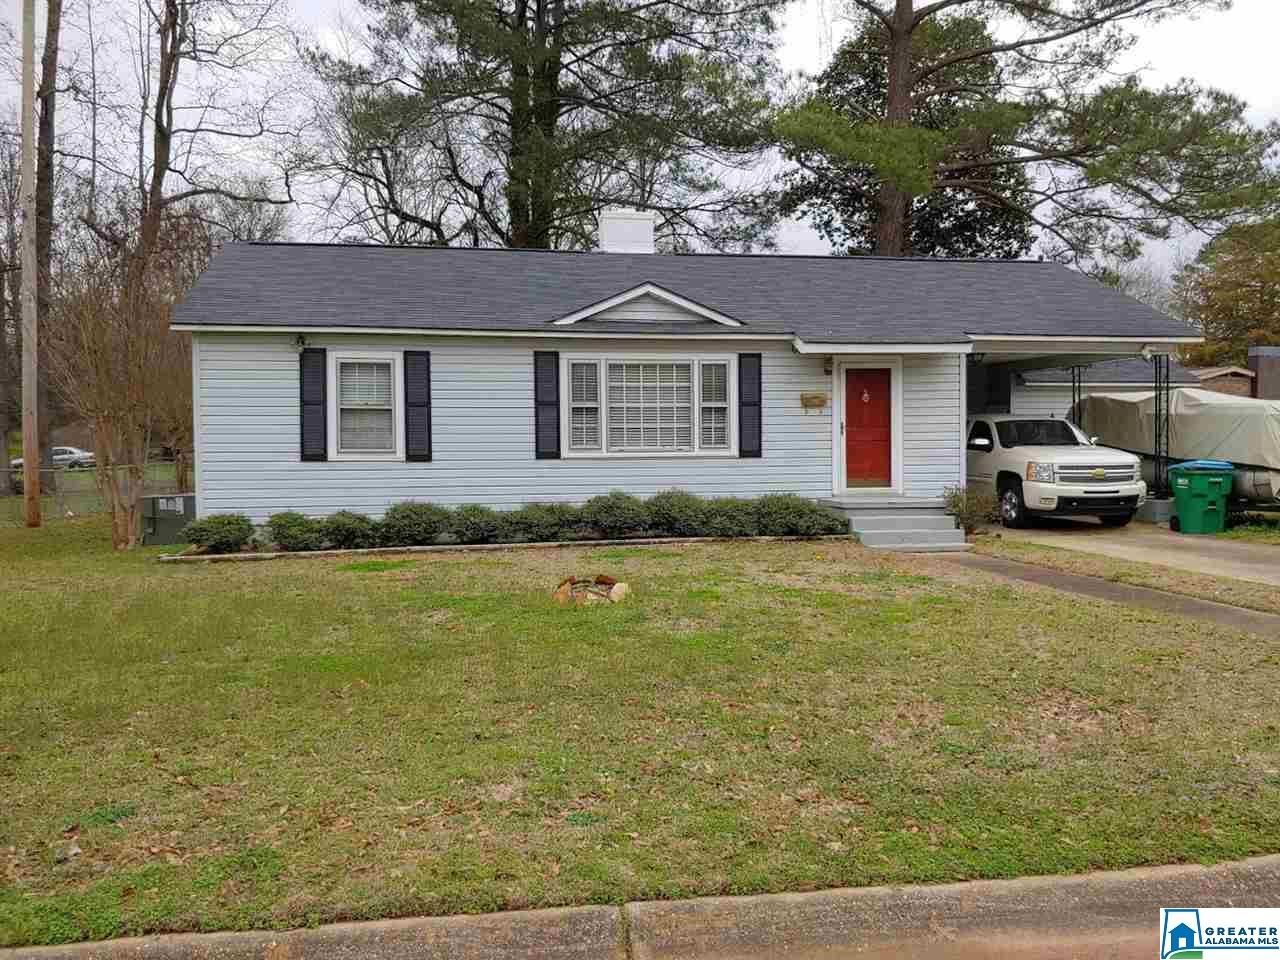 202 MEADOW LN, Sylacauga, AL 35150 - MLS#: 874864